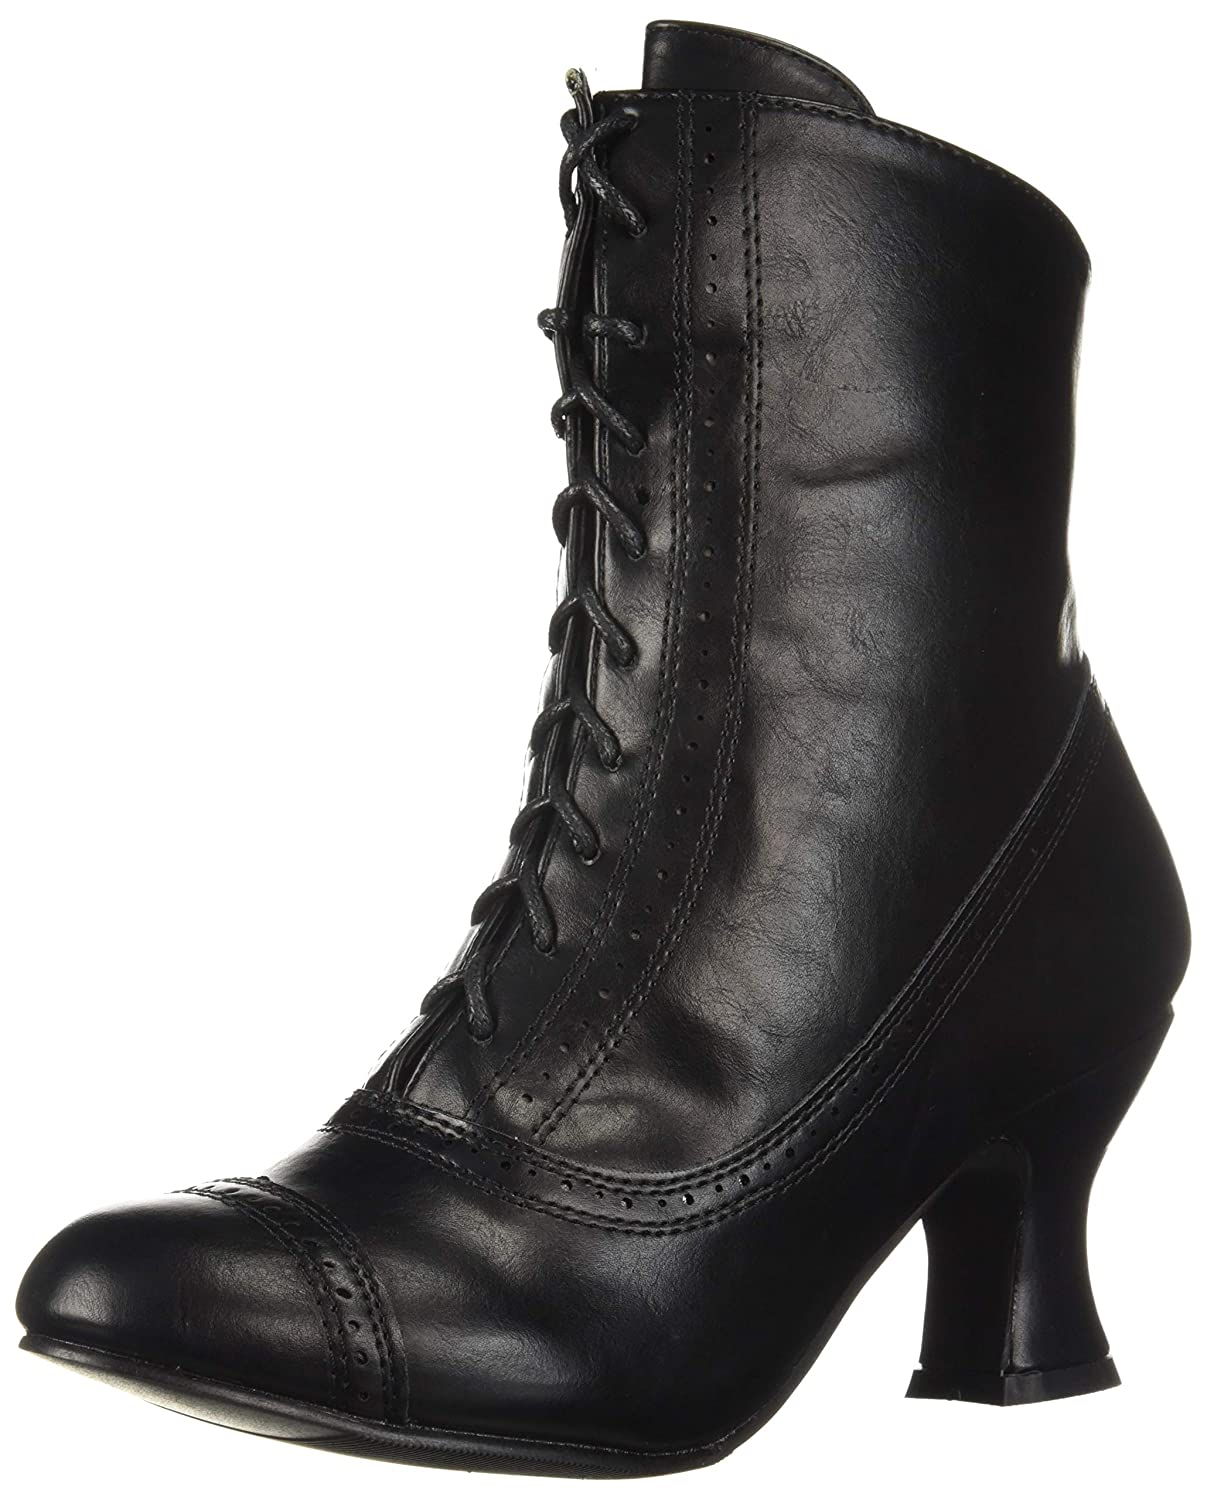 Vintage Boots- Buy Winter Retro Boots Ellie Shoes Womens 253-sarah Mid Calf Boot �43.09 AT vintagedancer.com